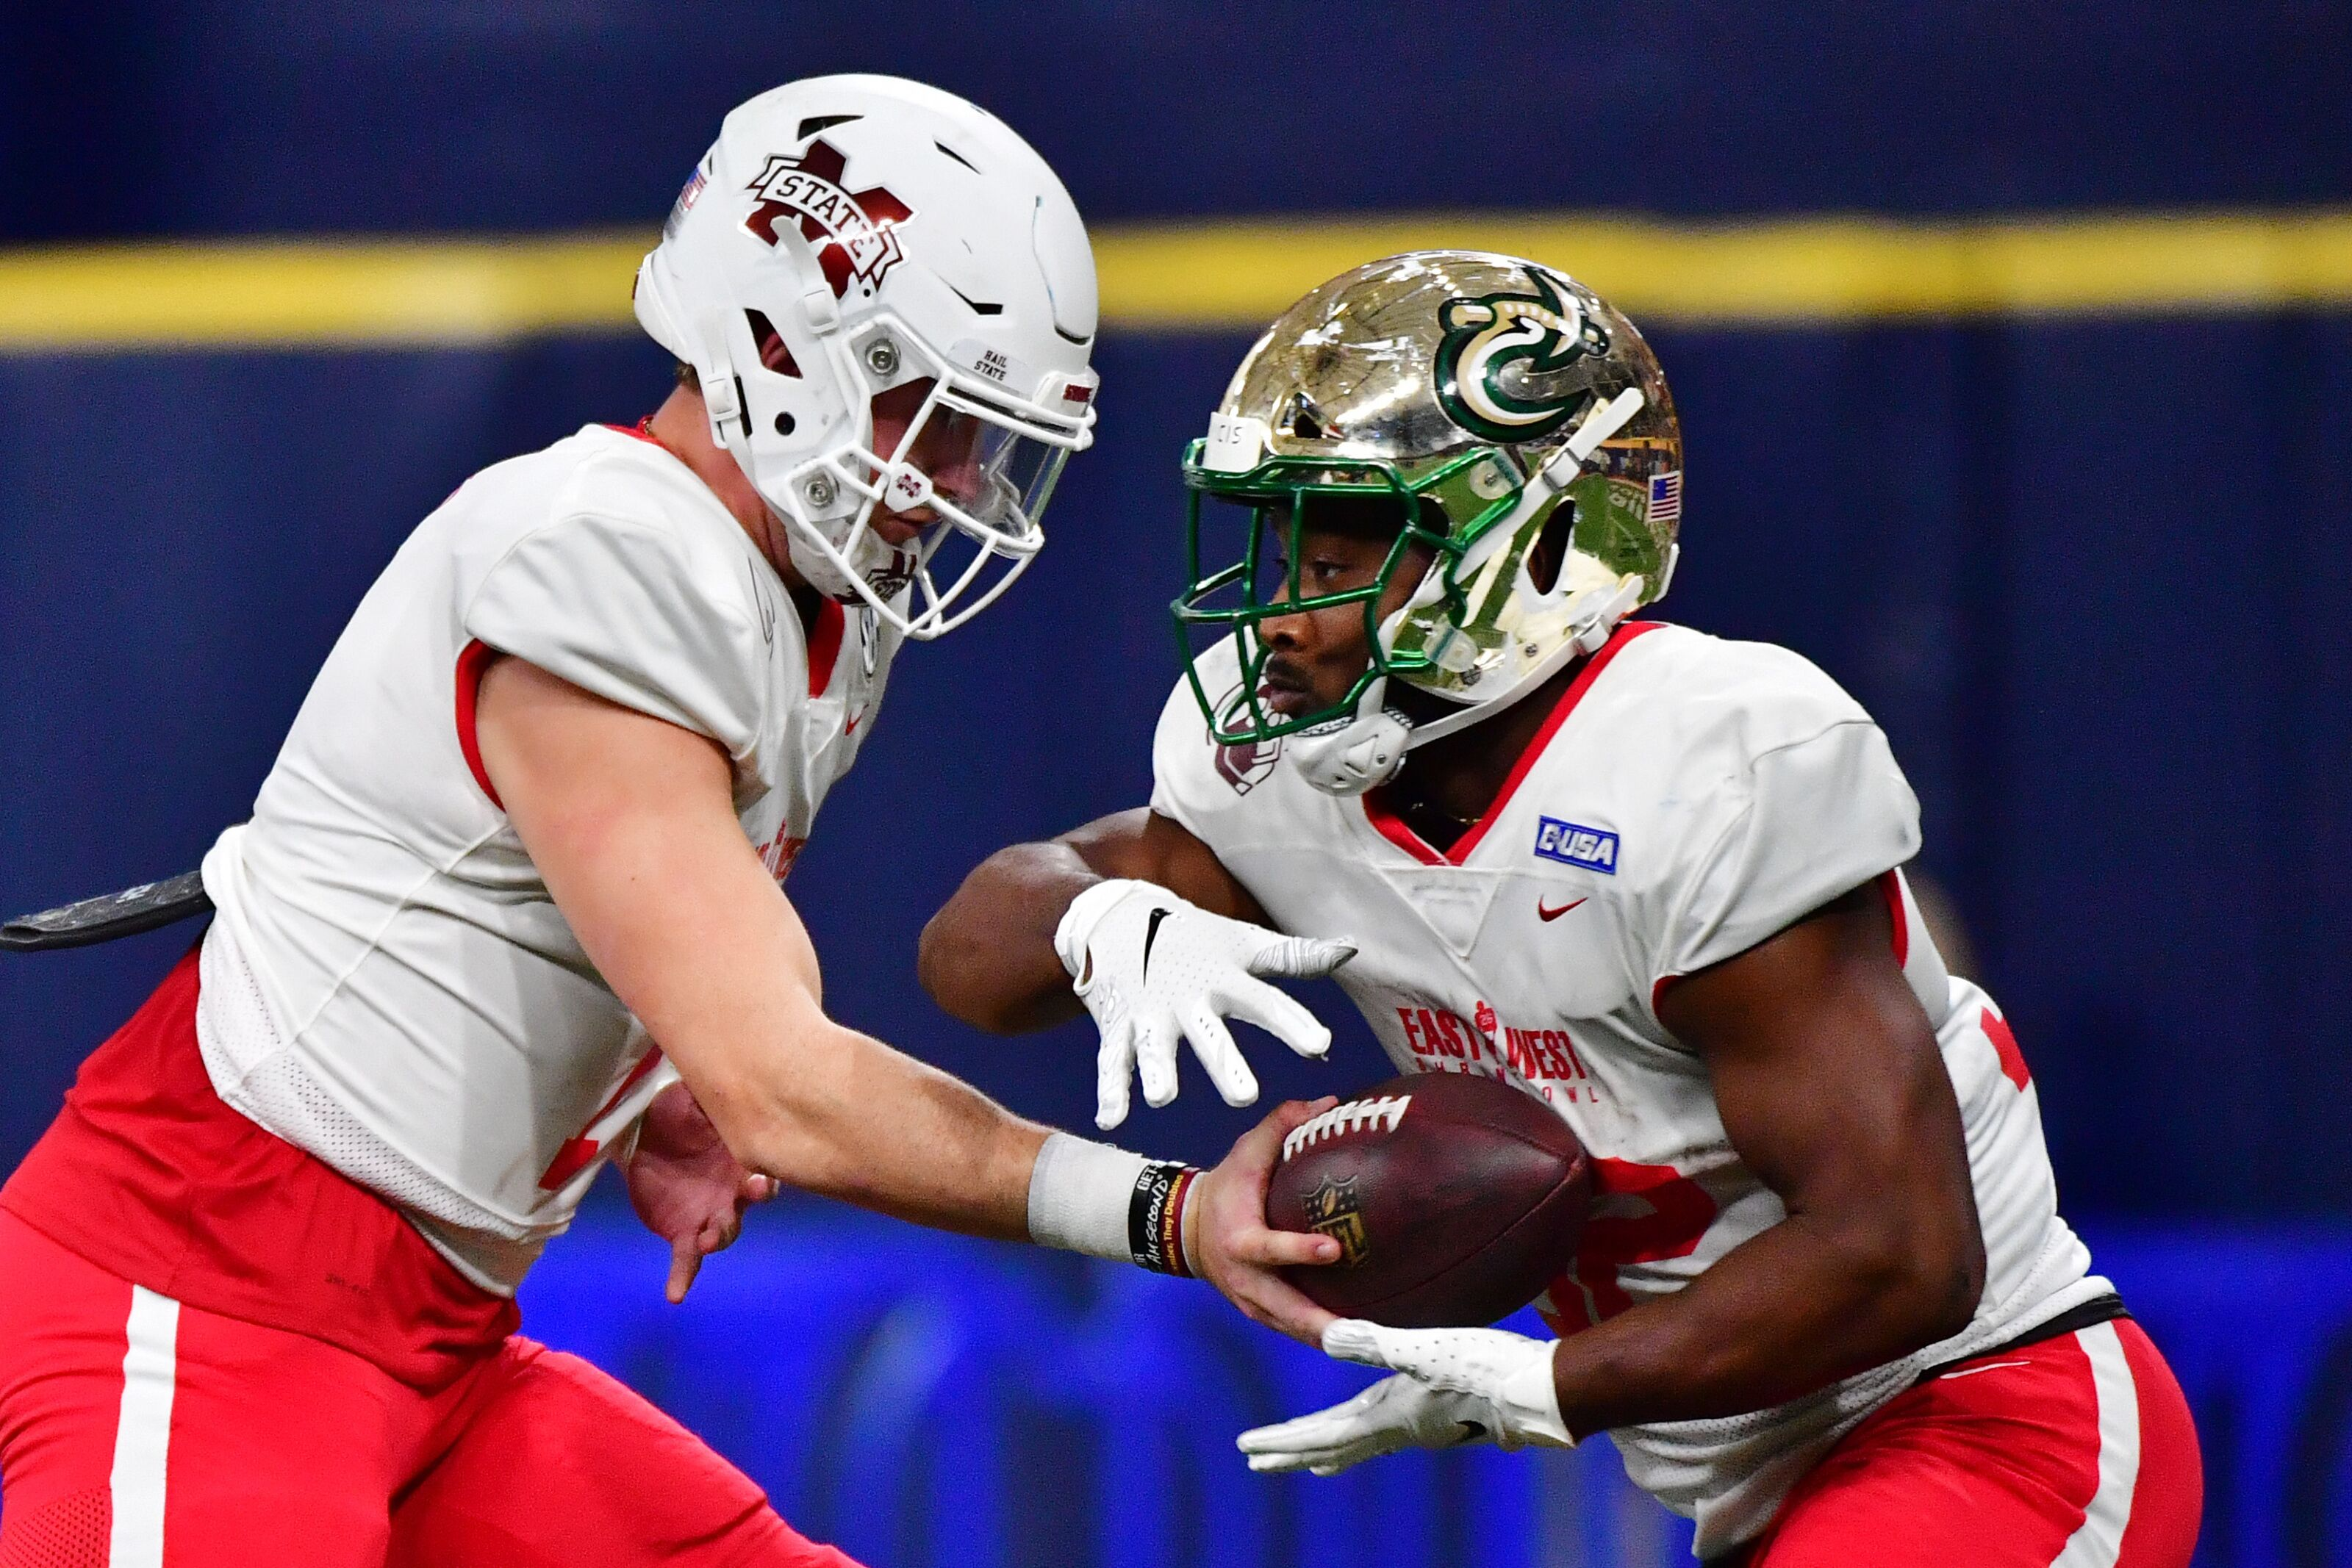 LA Rams fans see rise of the small college player on Saturday